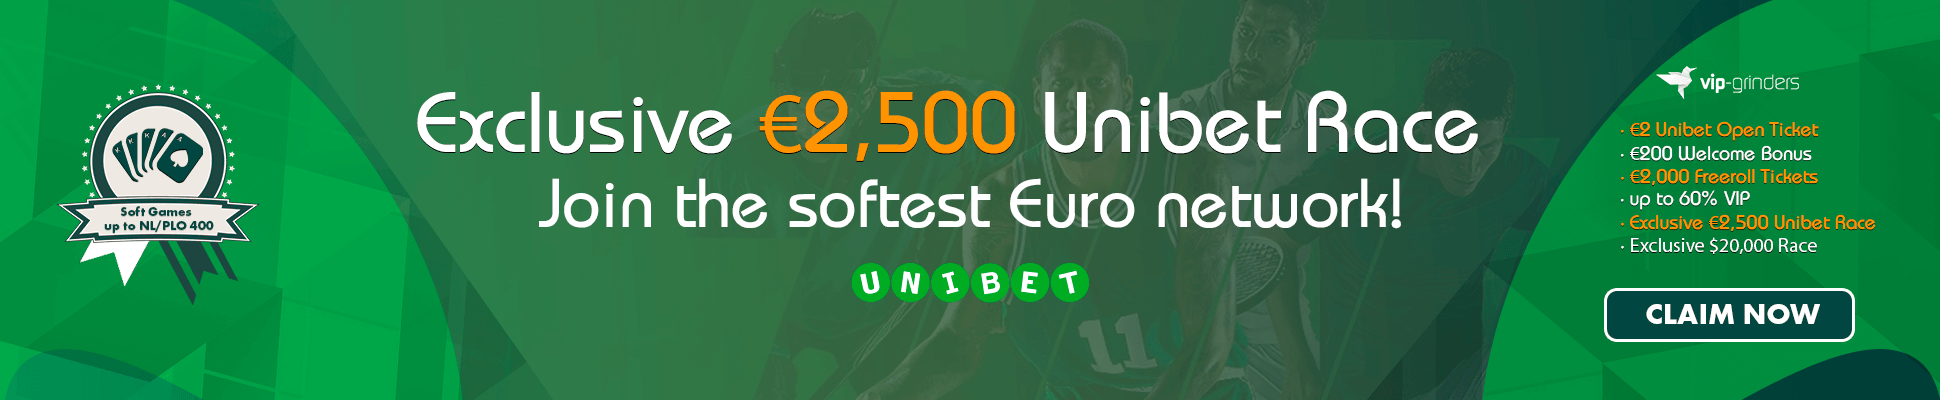 UNIBET-SLider-July